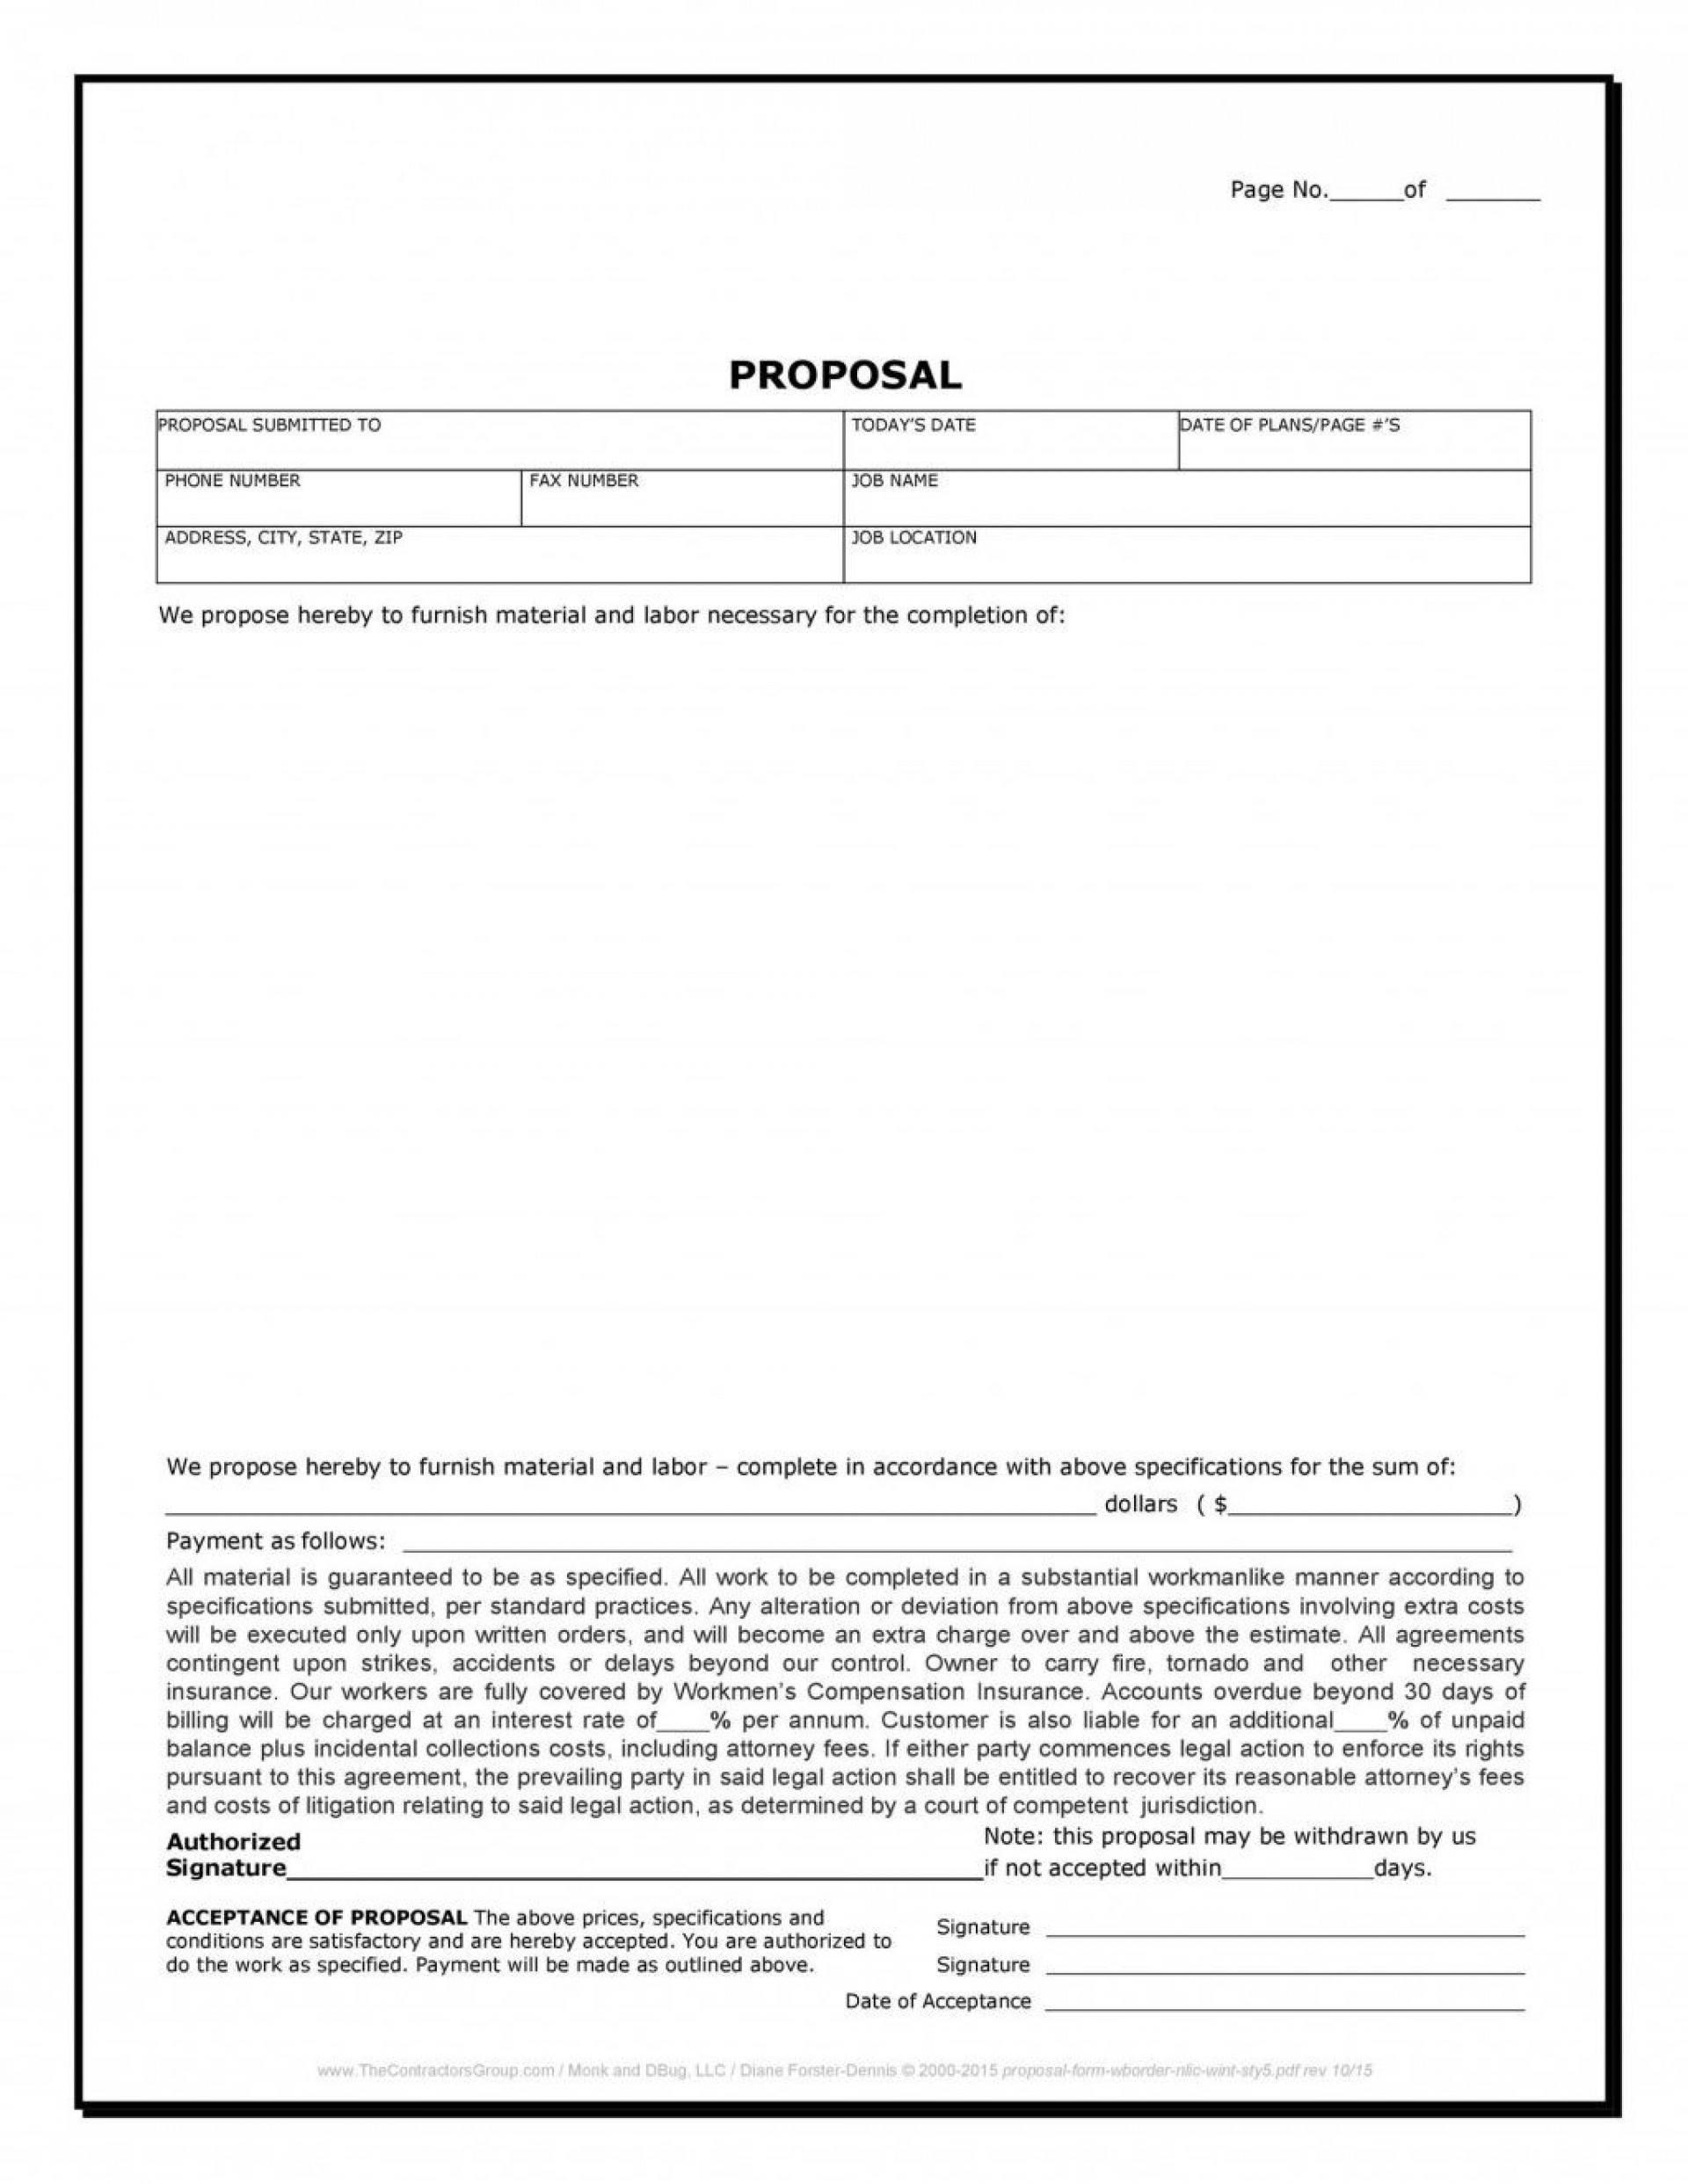 005 Exceptional Microsoft Word Job Proposal Template Sample 1920